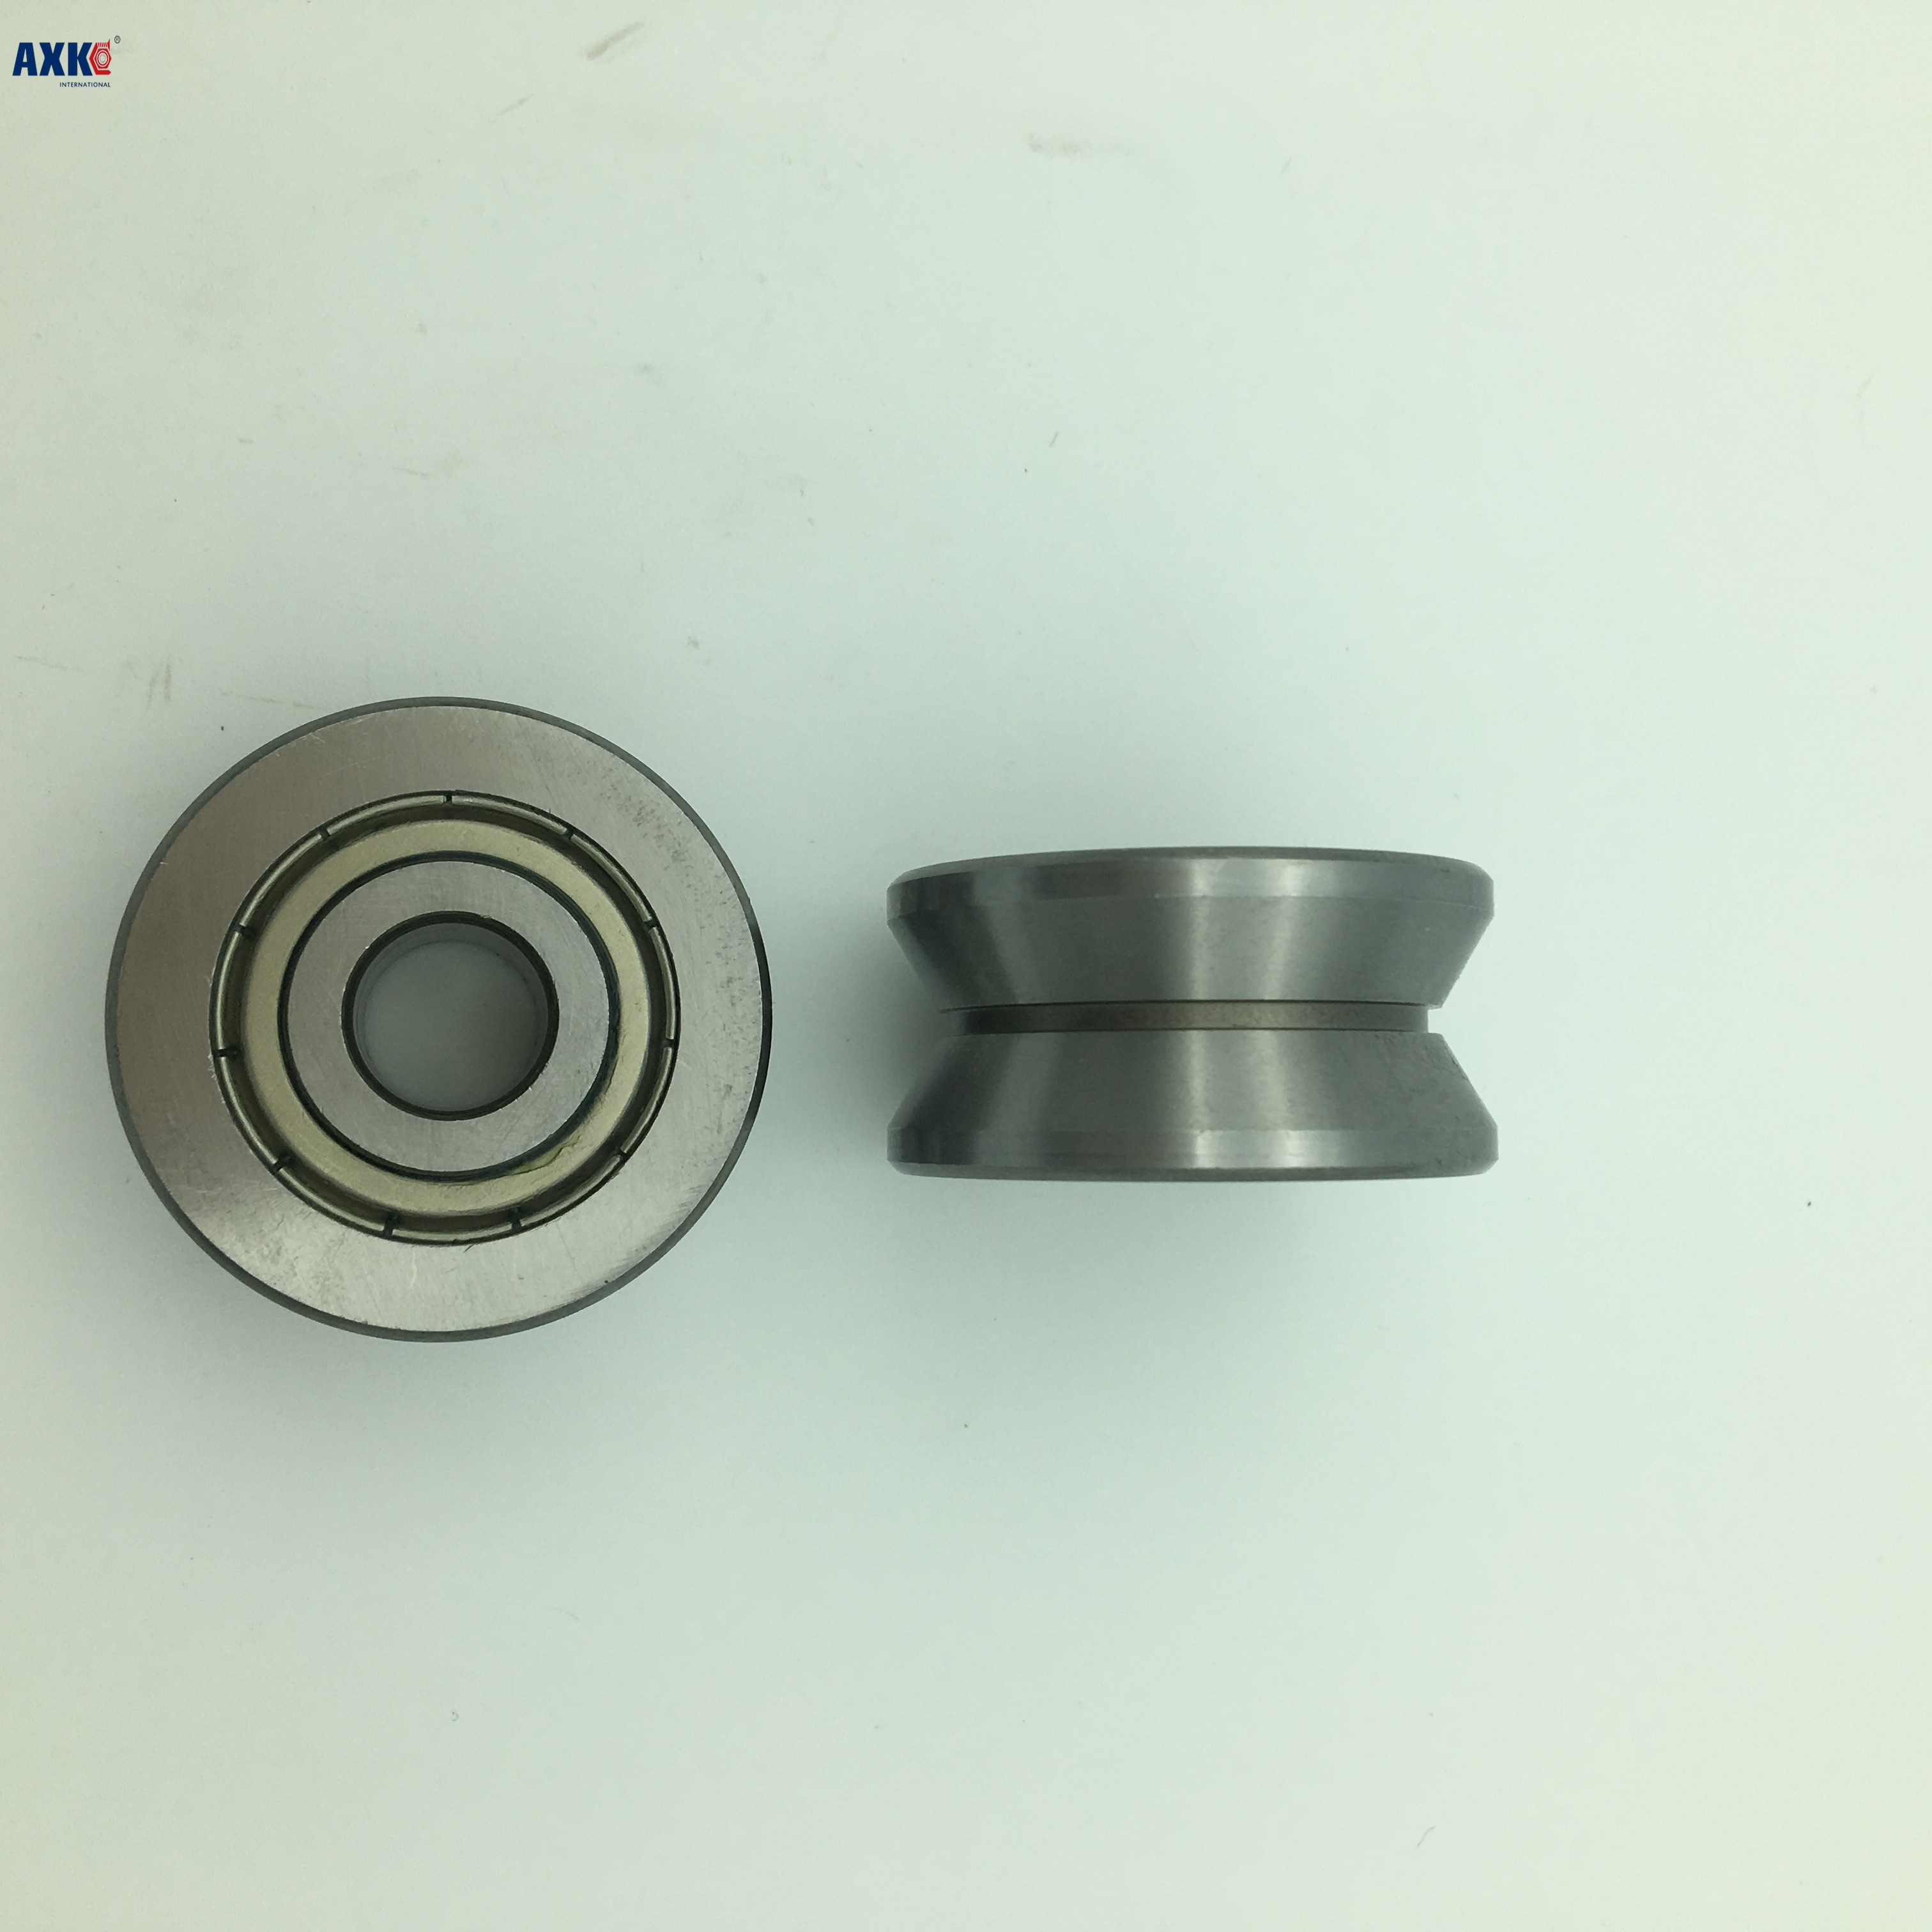 Free shipping high quality TU16 T16  U16 T16.5 ABEC5 6mm pulley bearings 5x16.5x9x11mm U groove roller wheel ball bearing T-U-16 free shipping 10pcs lot js0519u u groove pulley bearings 5x19 5x5 2mm ugroove roller wheel ball bearing for clothes hanger 635zz